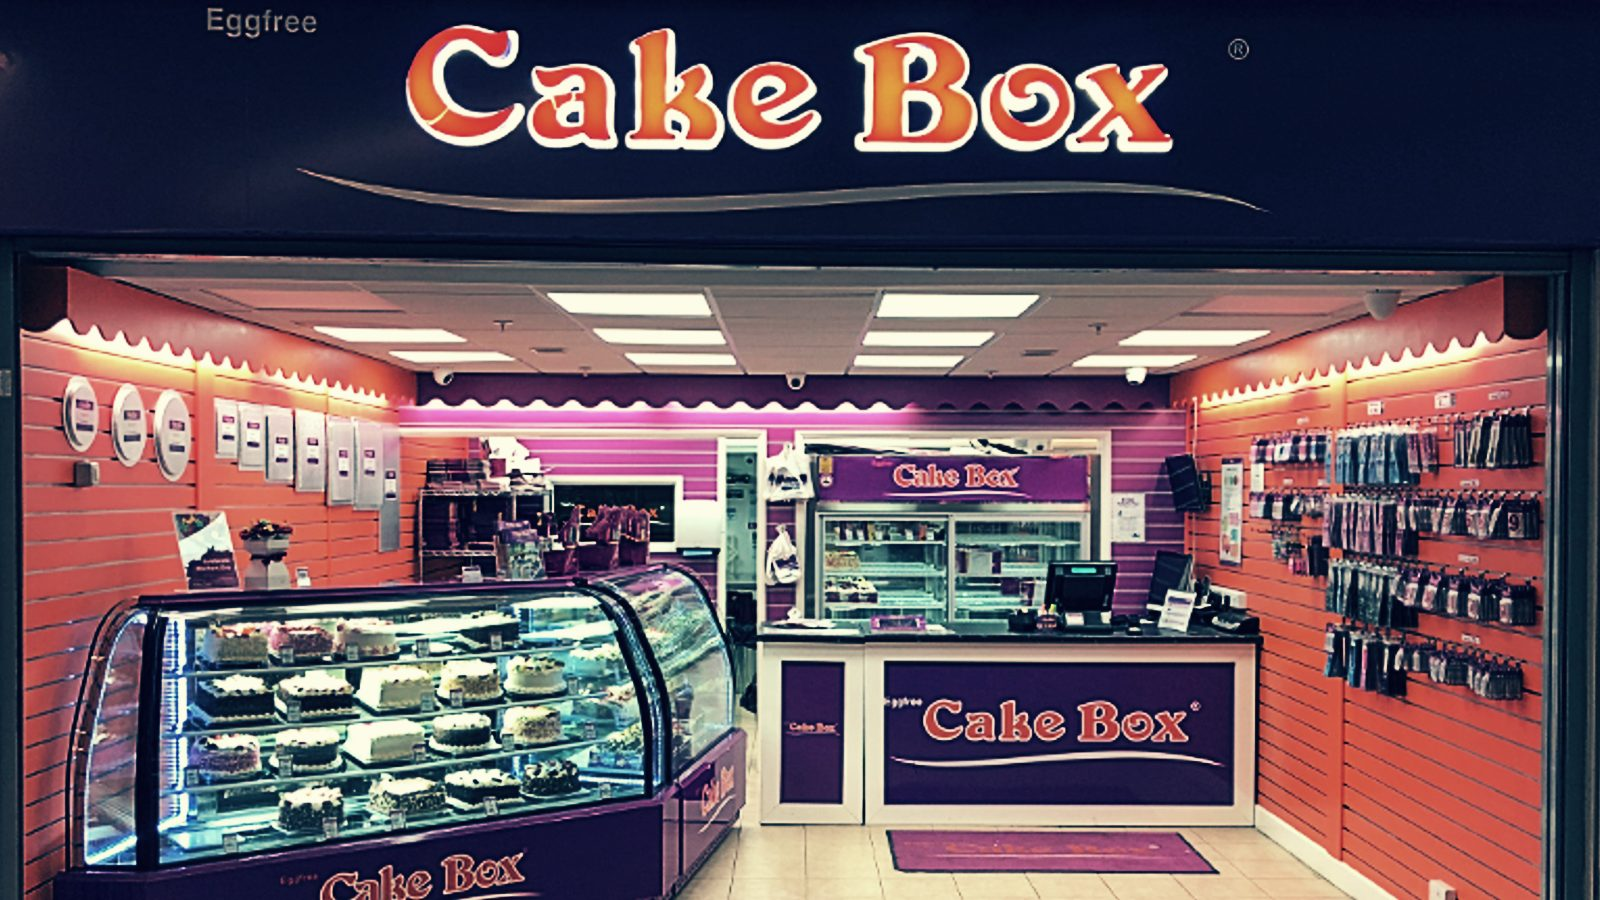 Eggfree Cake Box suffers data breach exposing credit card numbers